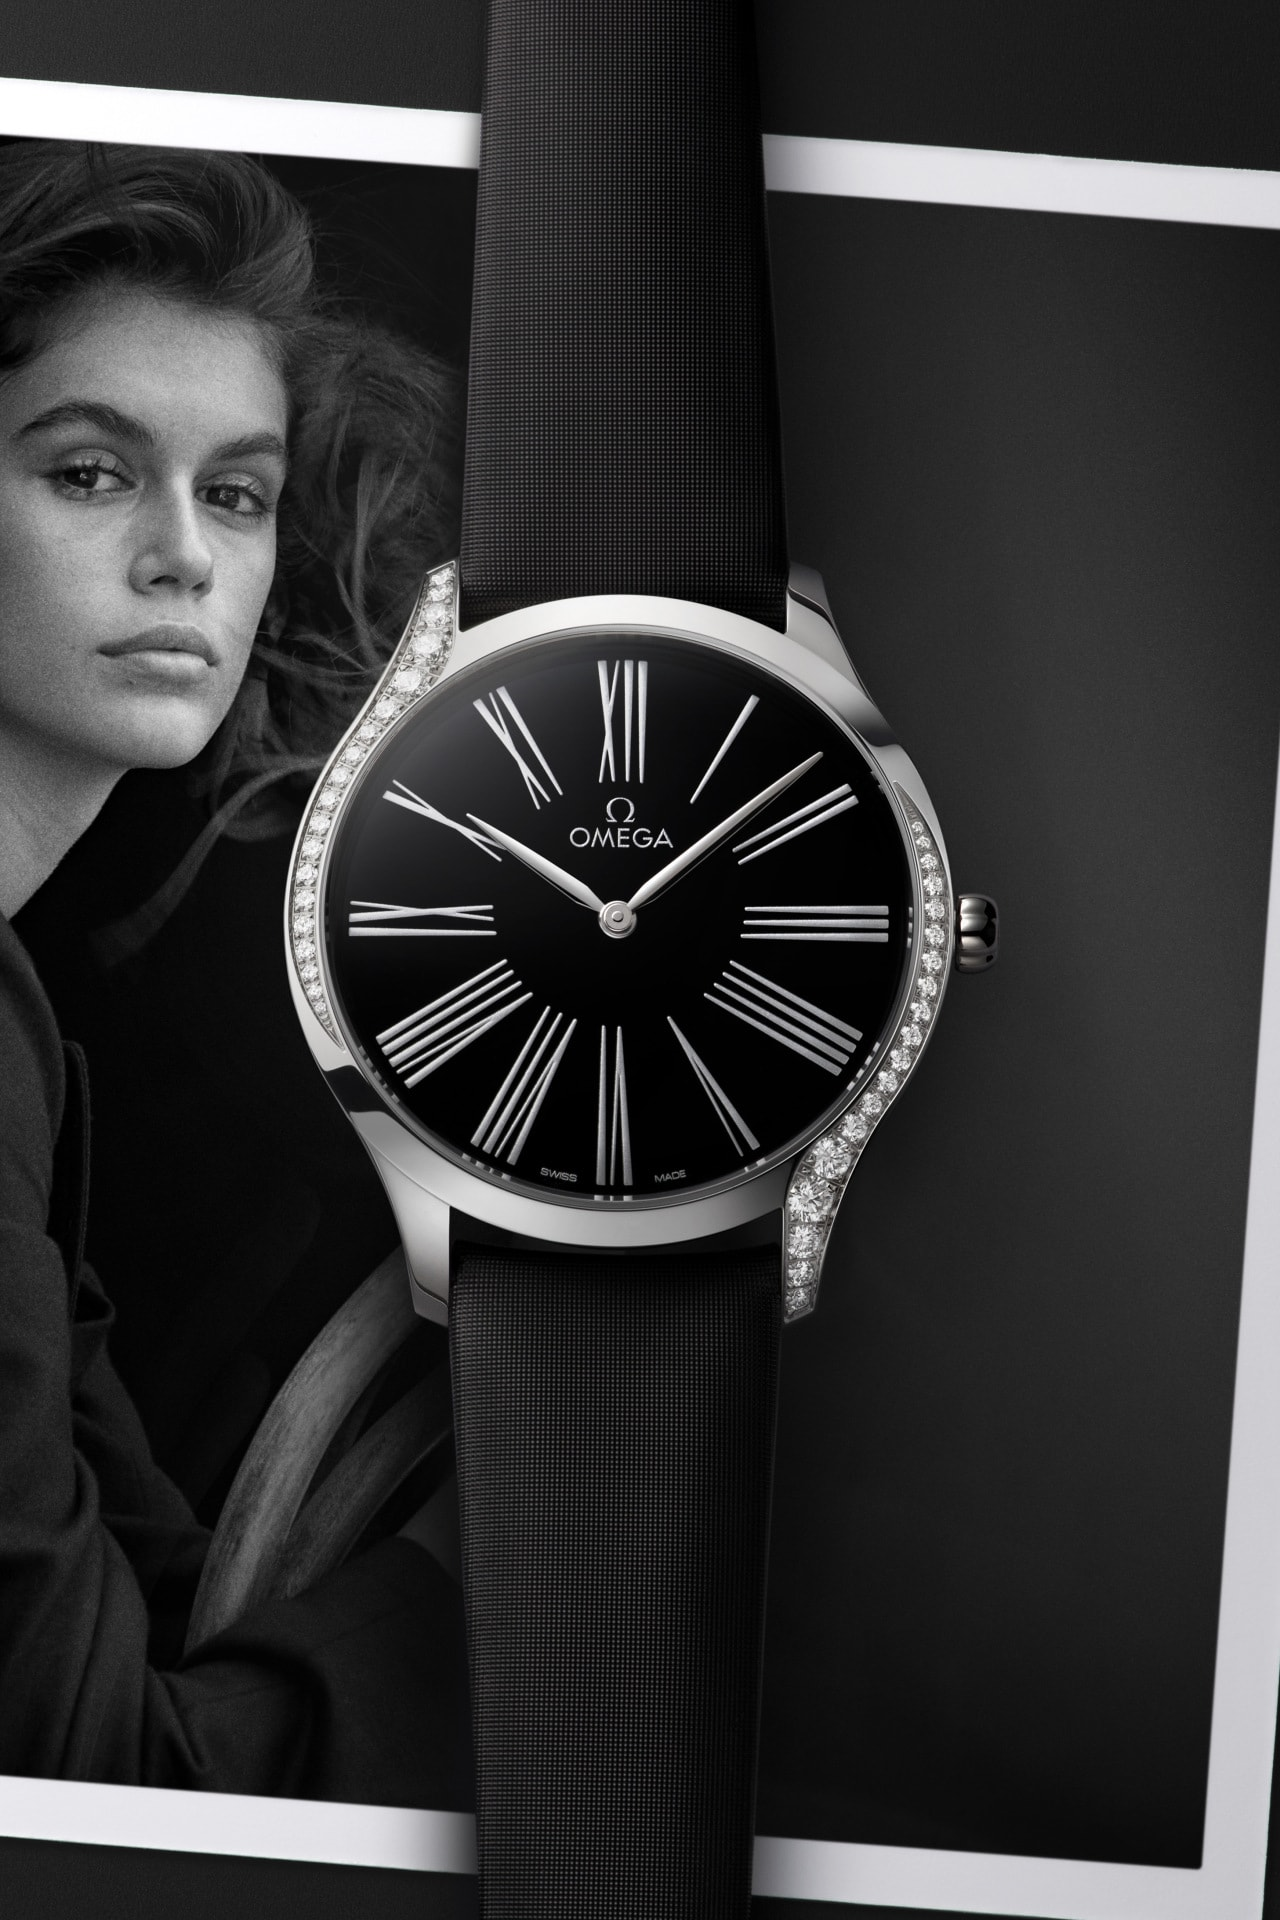 The time is now: pop into Omega's must-attend pop-up to find your next timepiece